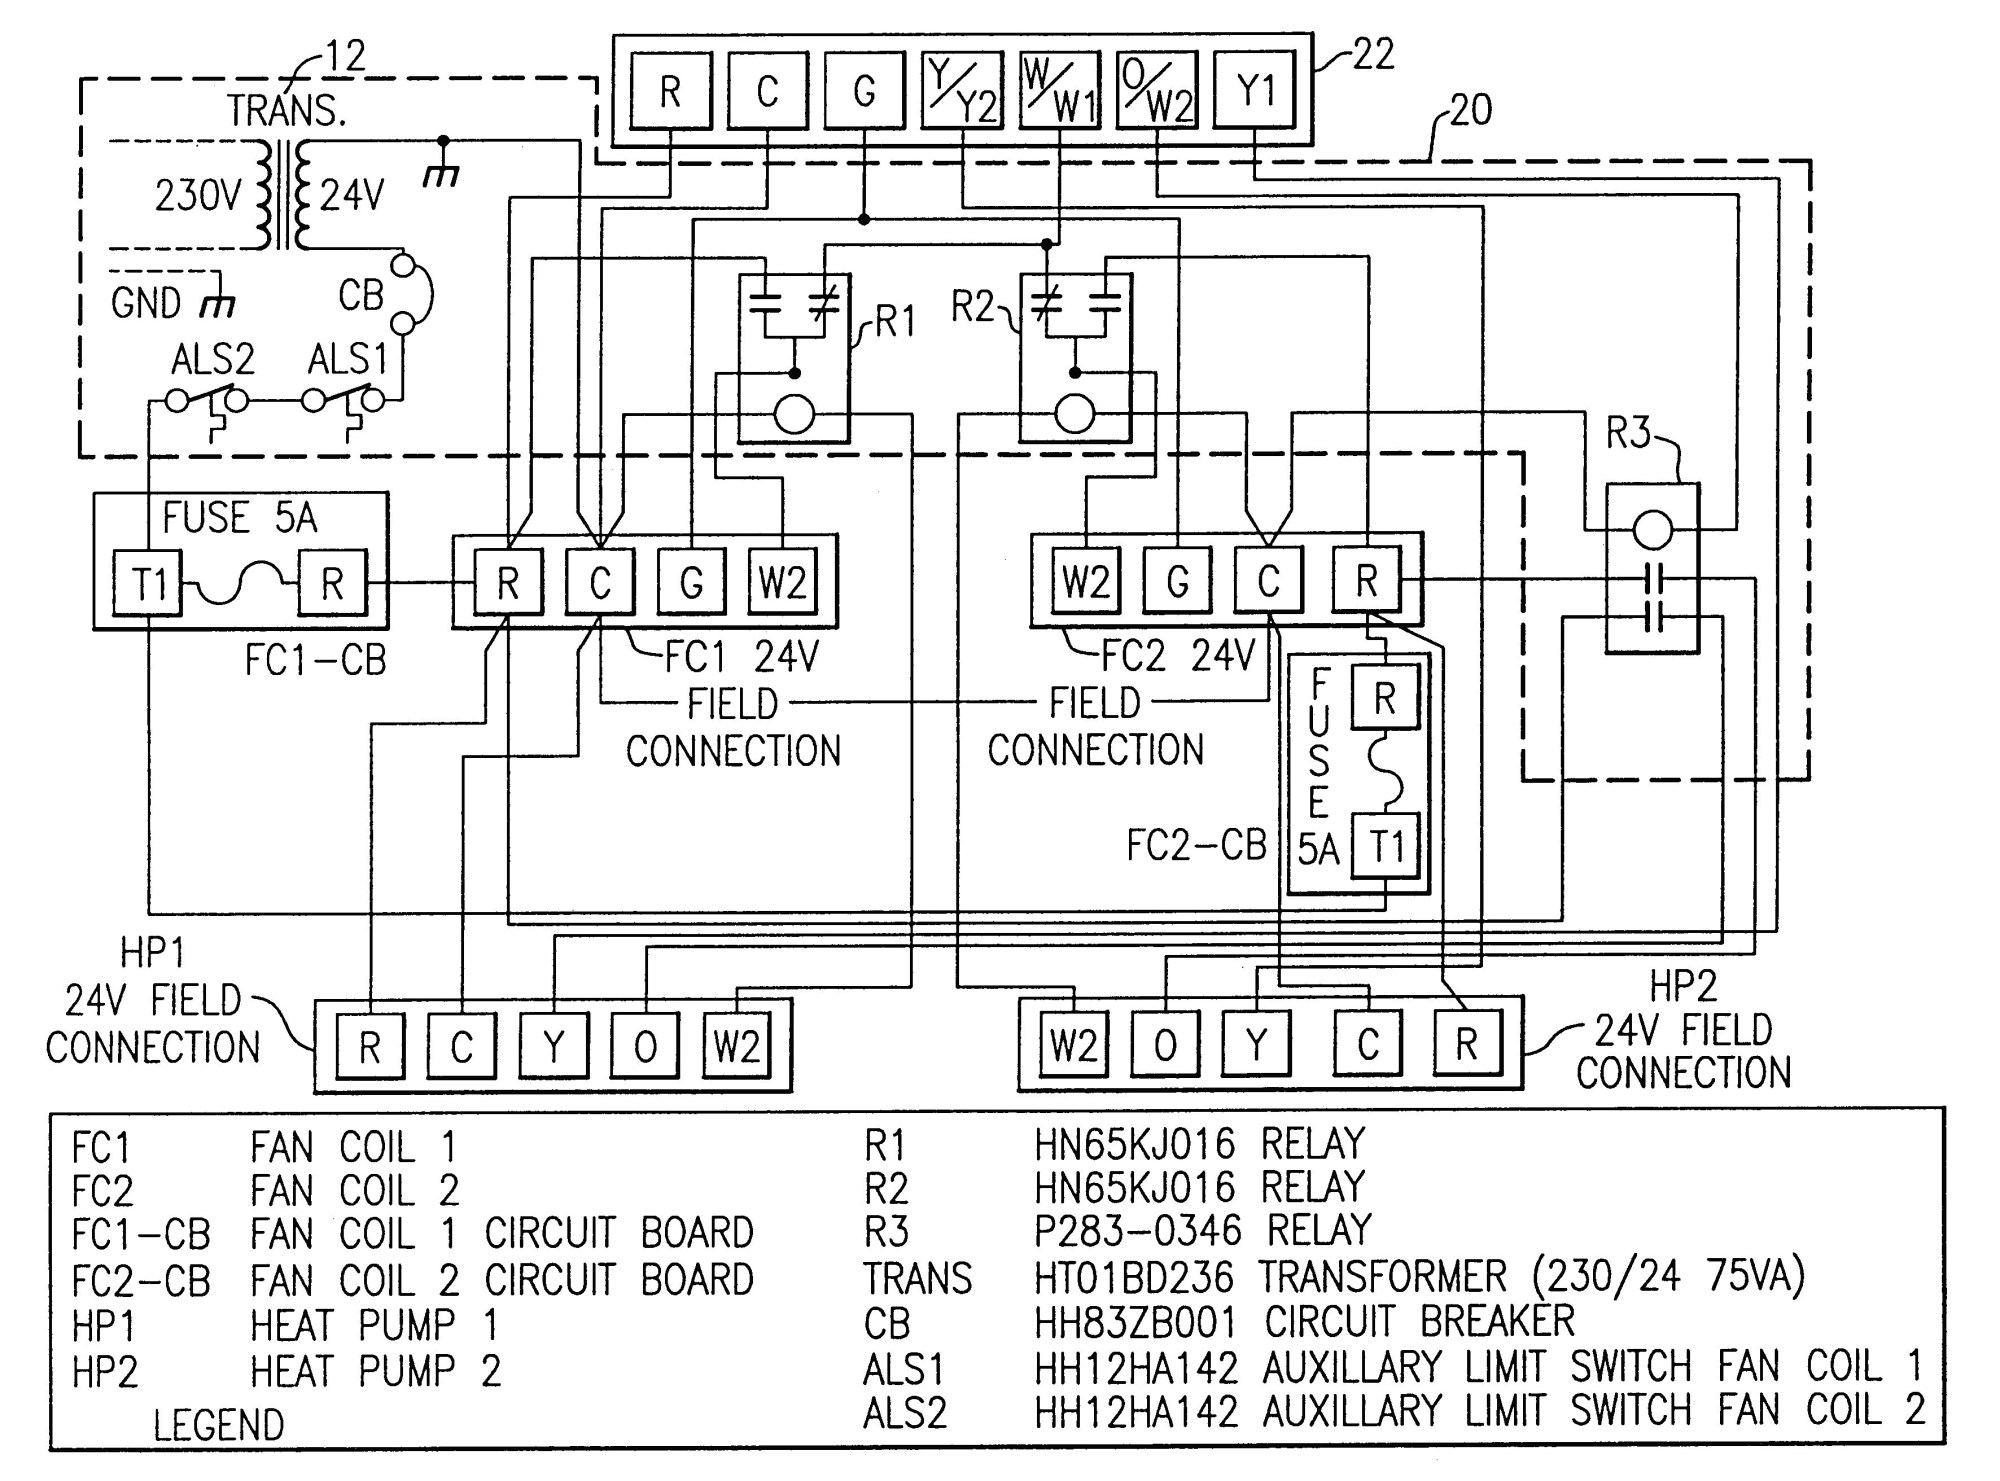 hight resolution of lennox g16 wiring diagram unlimited wiring diagrams library u2022 lennox energence lennox condenser diagram